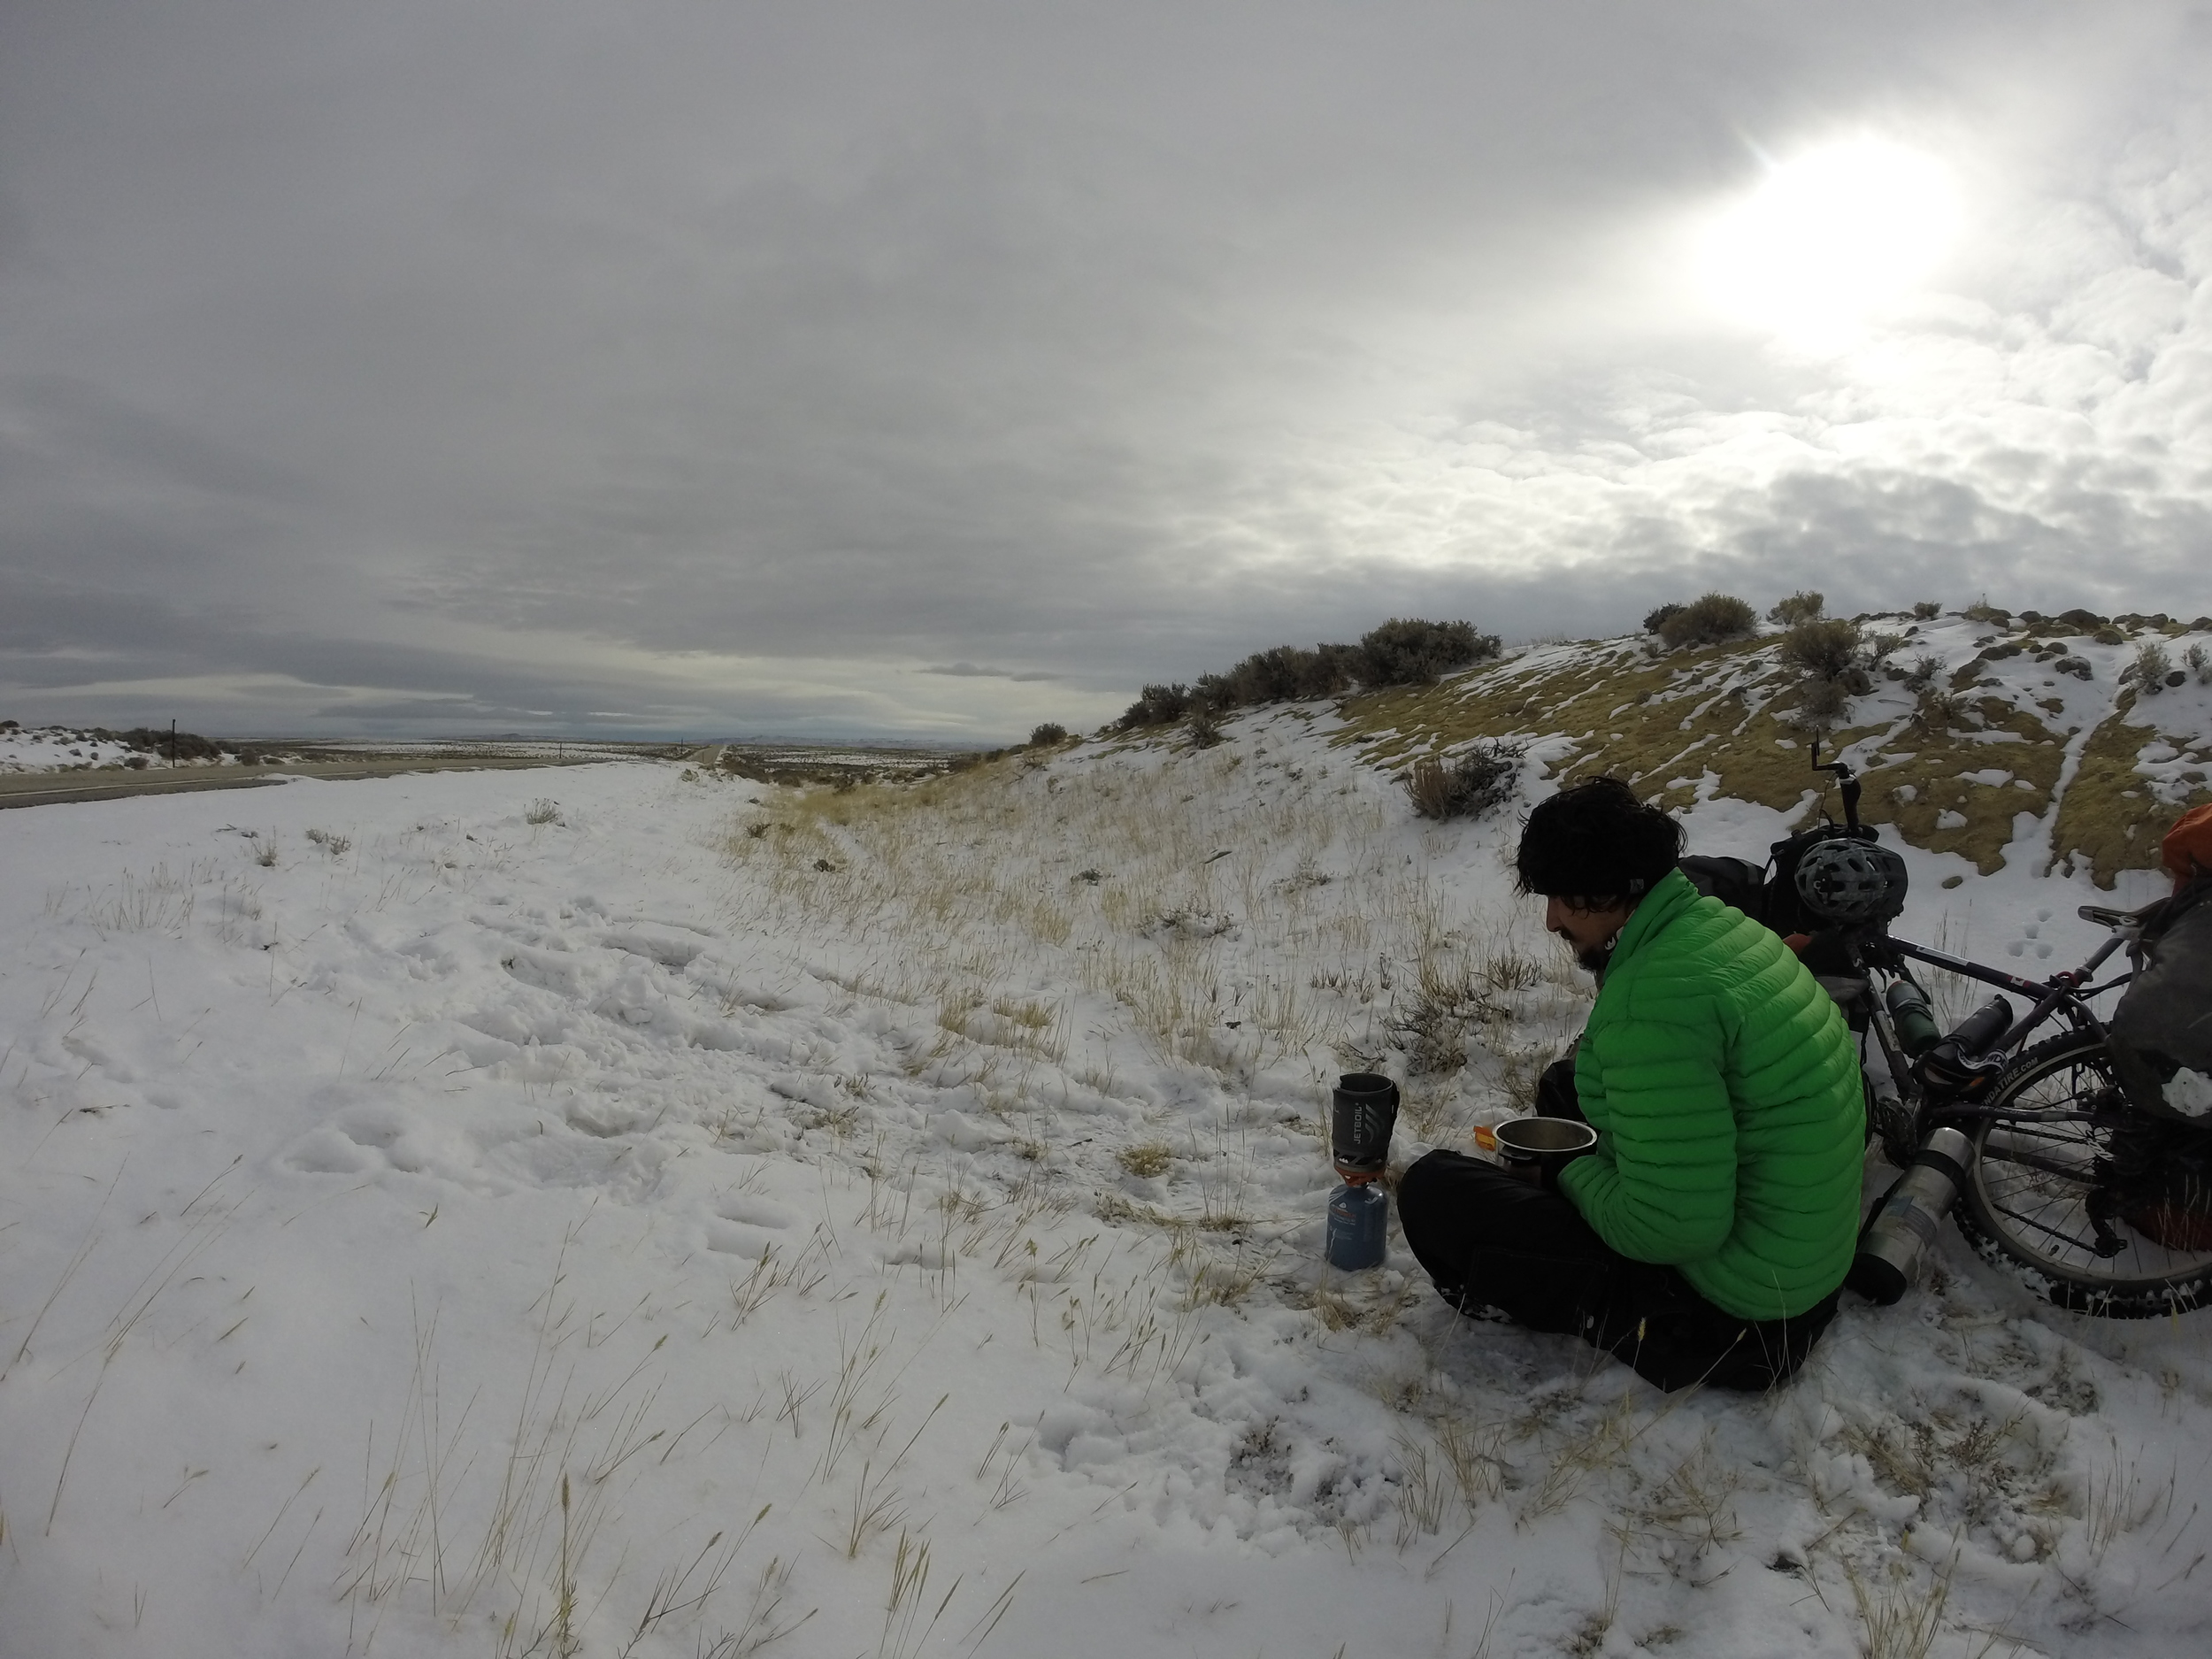 The ditch was the only place offering some cover from the wind. I stopped to melt snow for lunch & drinking water.